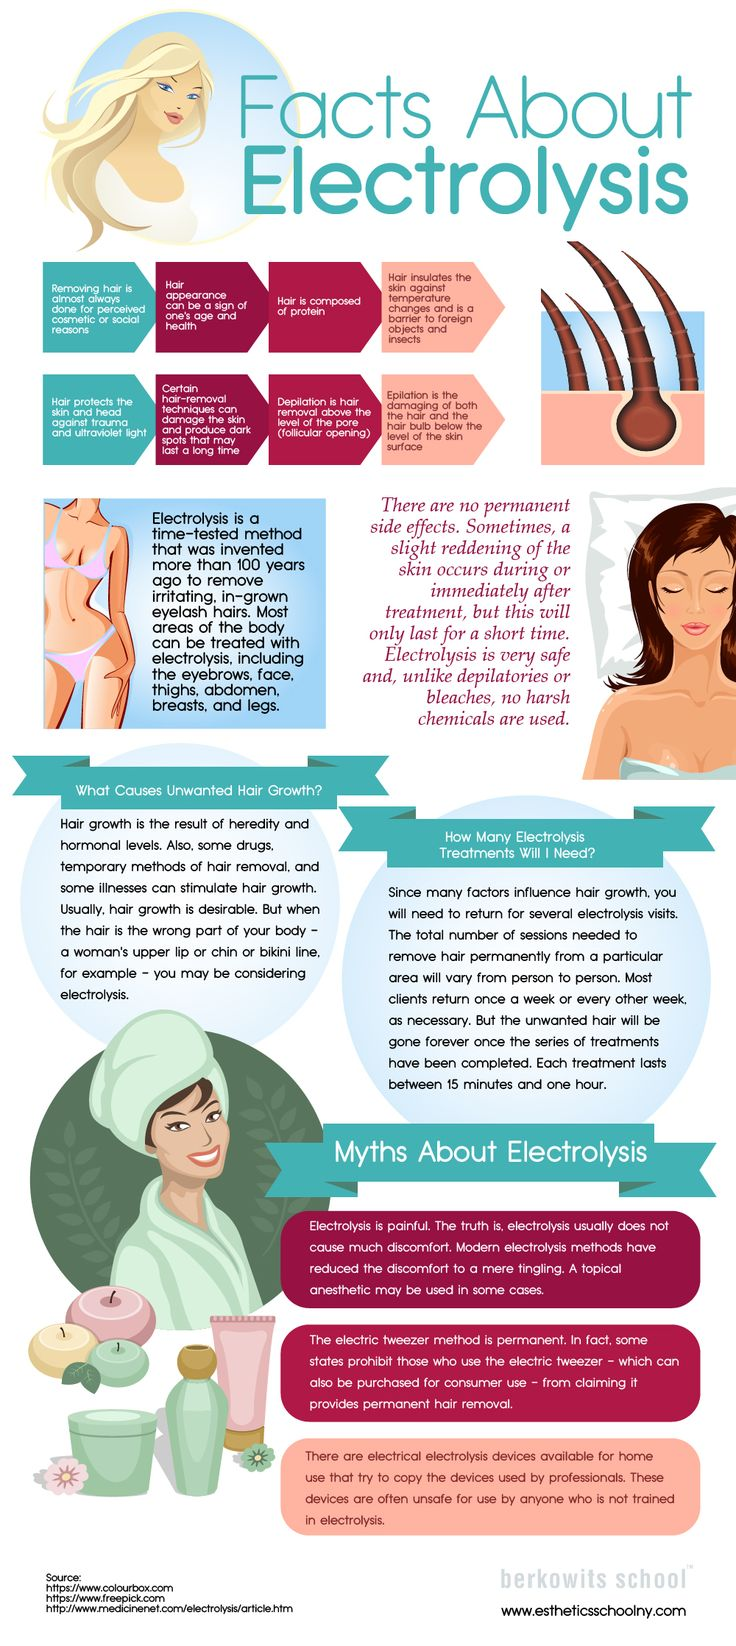 Everything You Need To Know About Electrolysis [Infographic]  If you are interested in removing unwanted hair, you need to try electrolysis. It was invented more than 100 years ago and has no side effects. Read everything about electrolysis below.